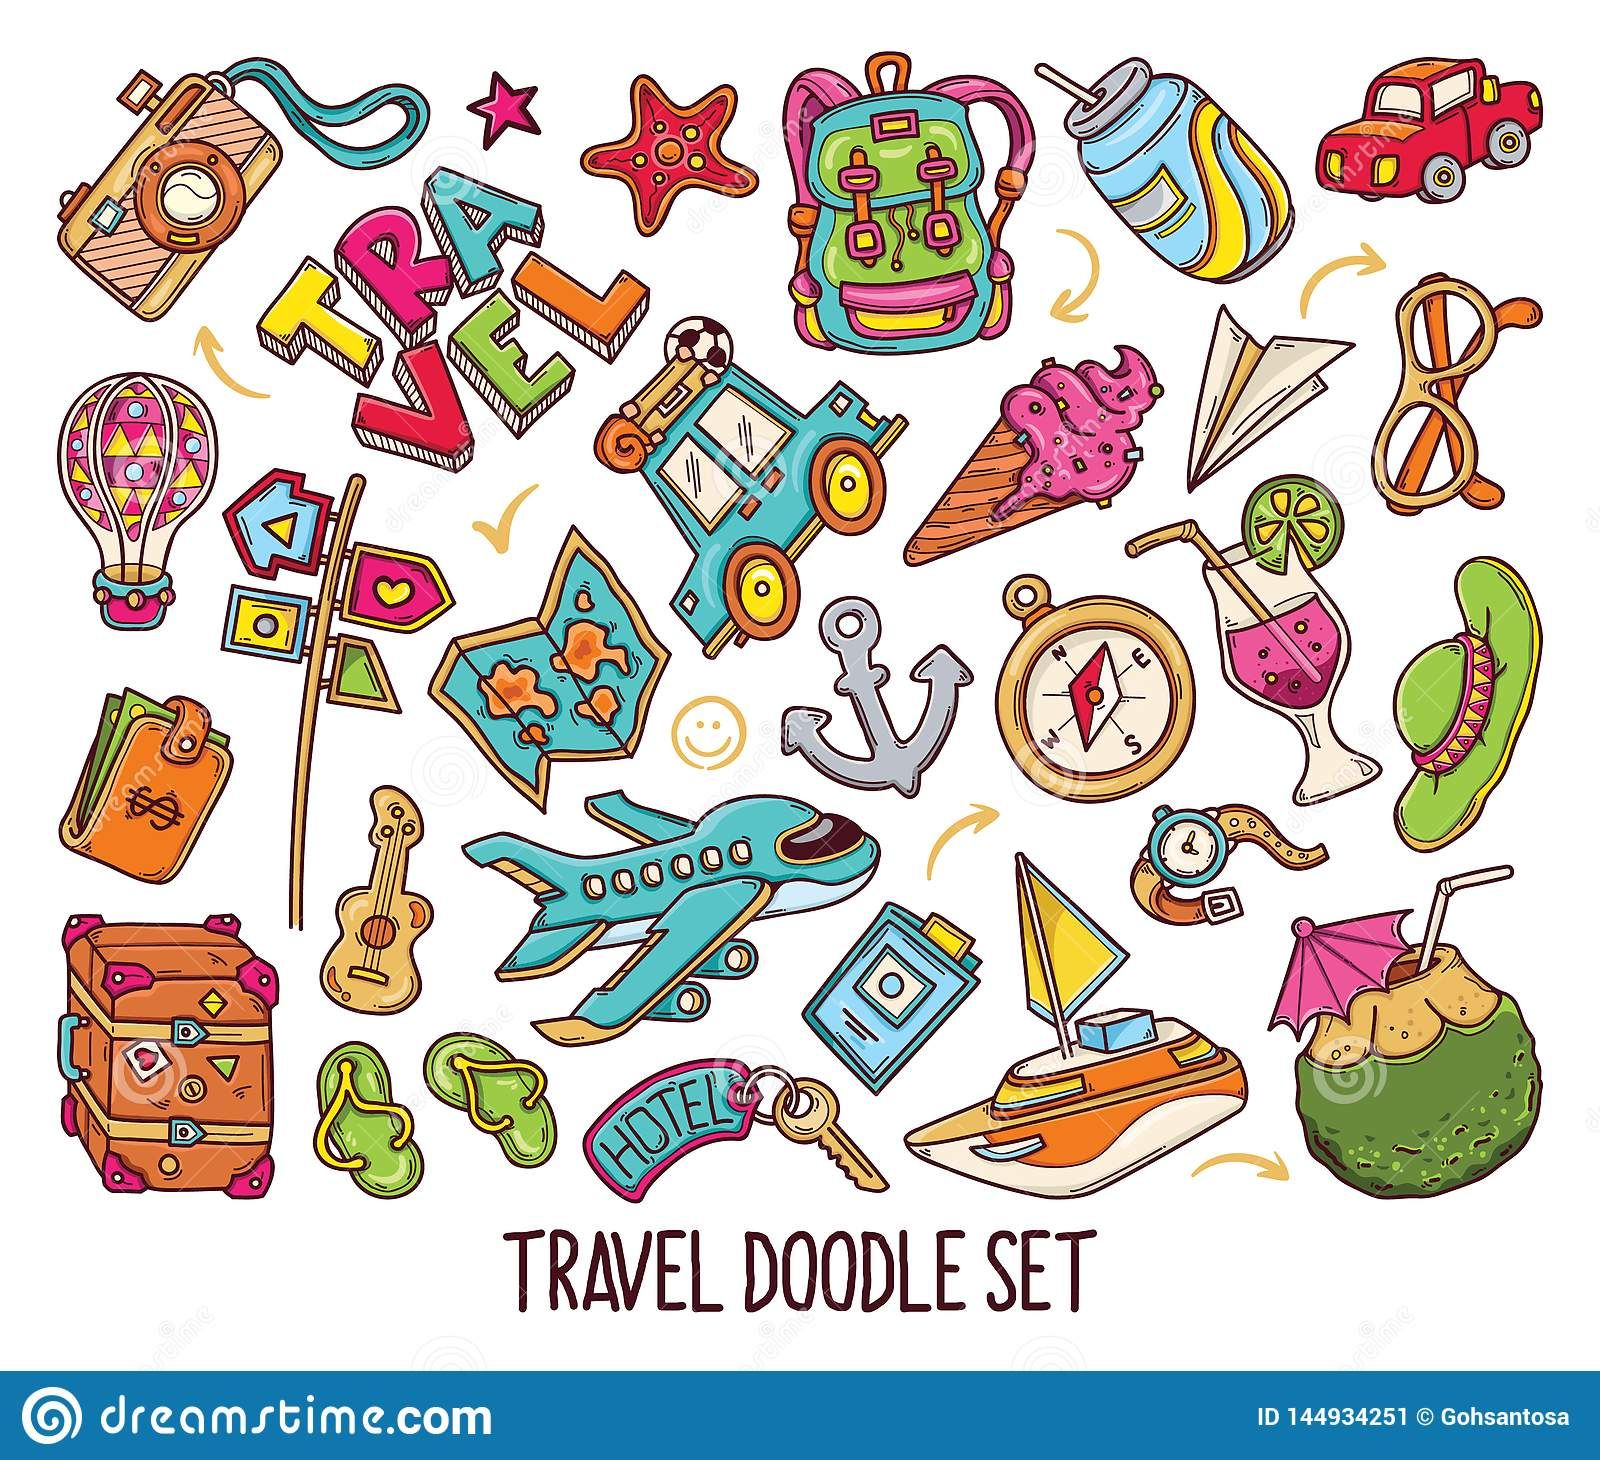 travel doodles Google Search in 2020 Travel doodles